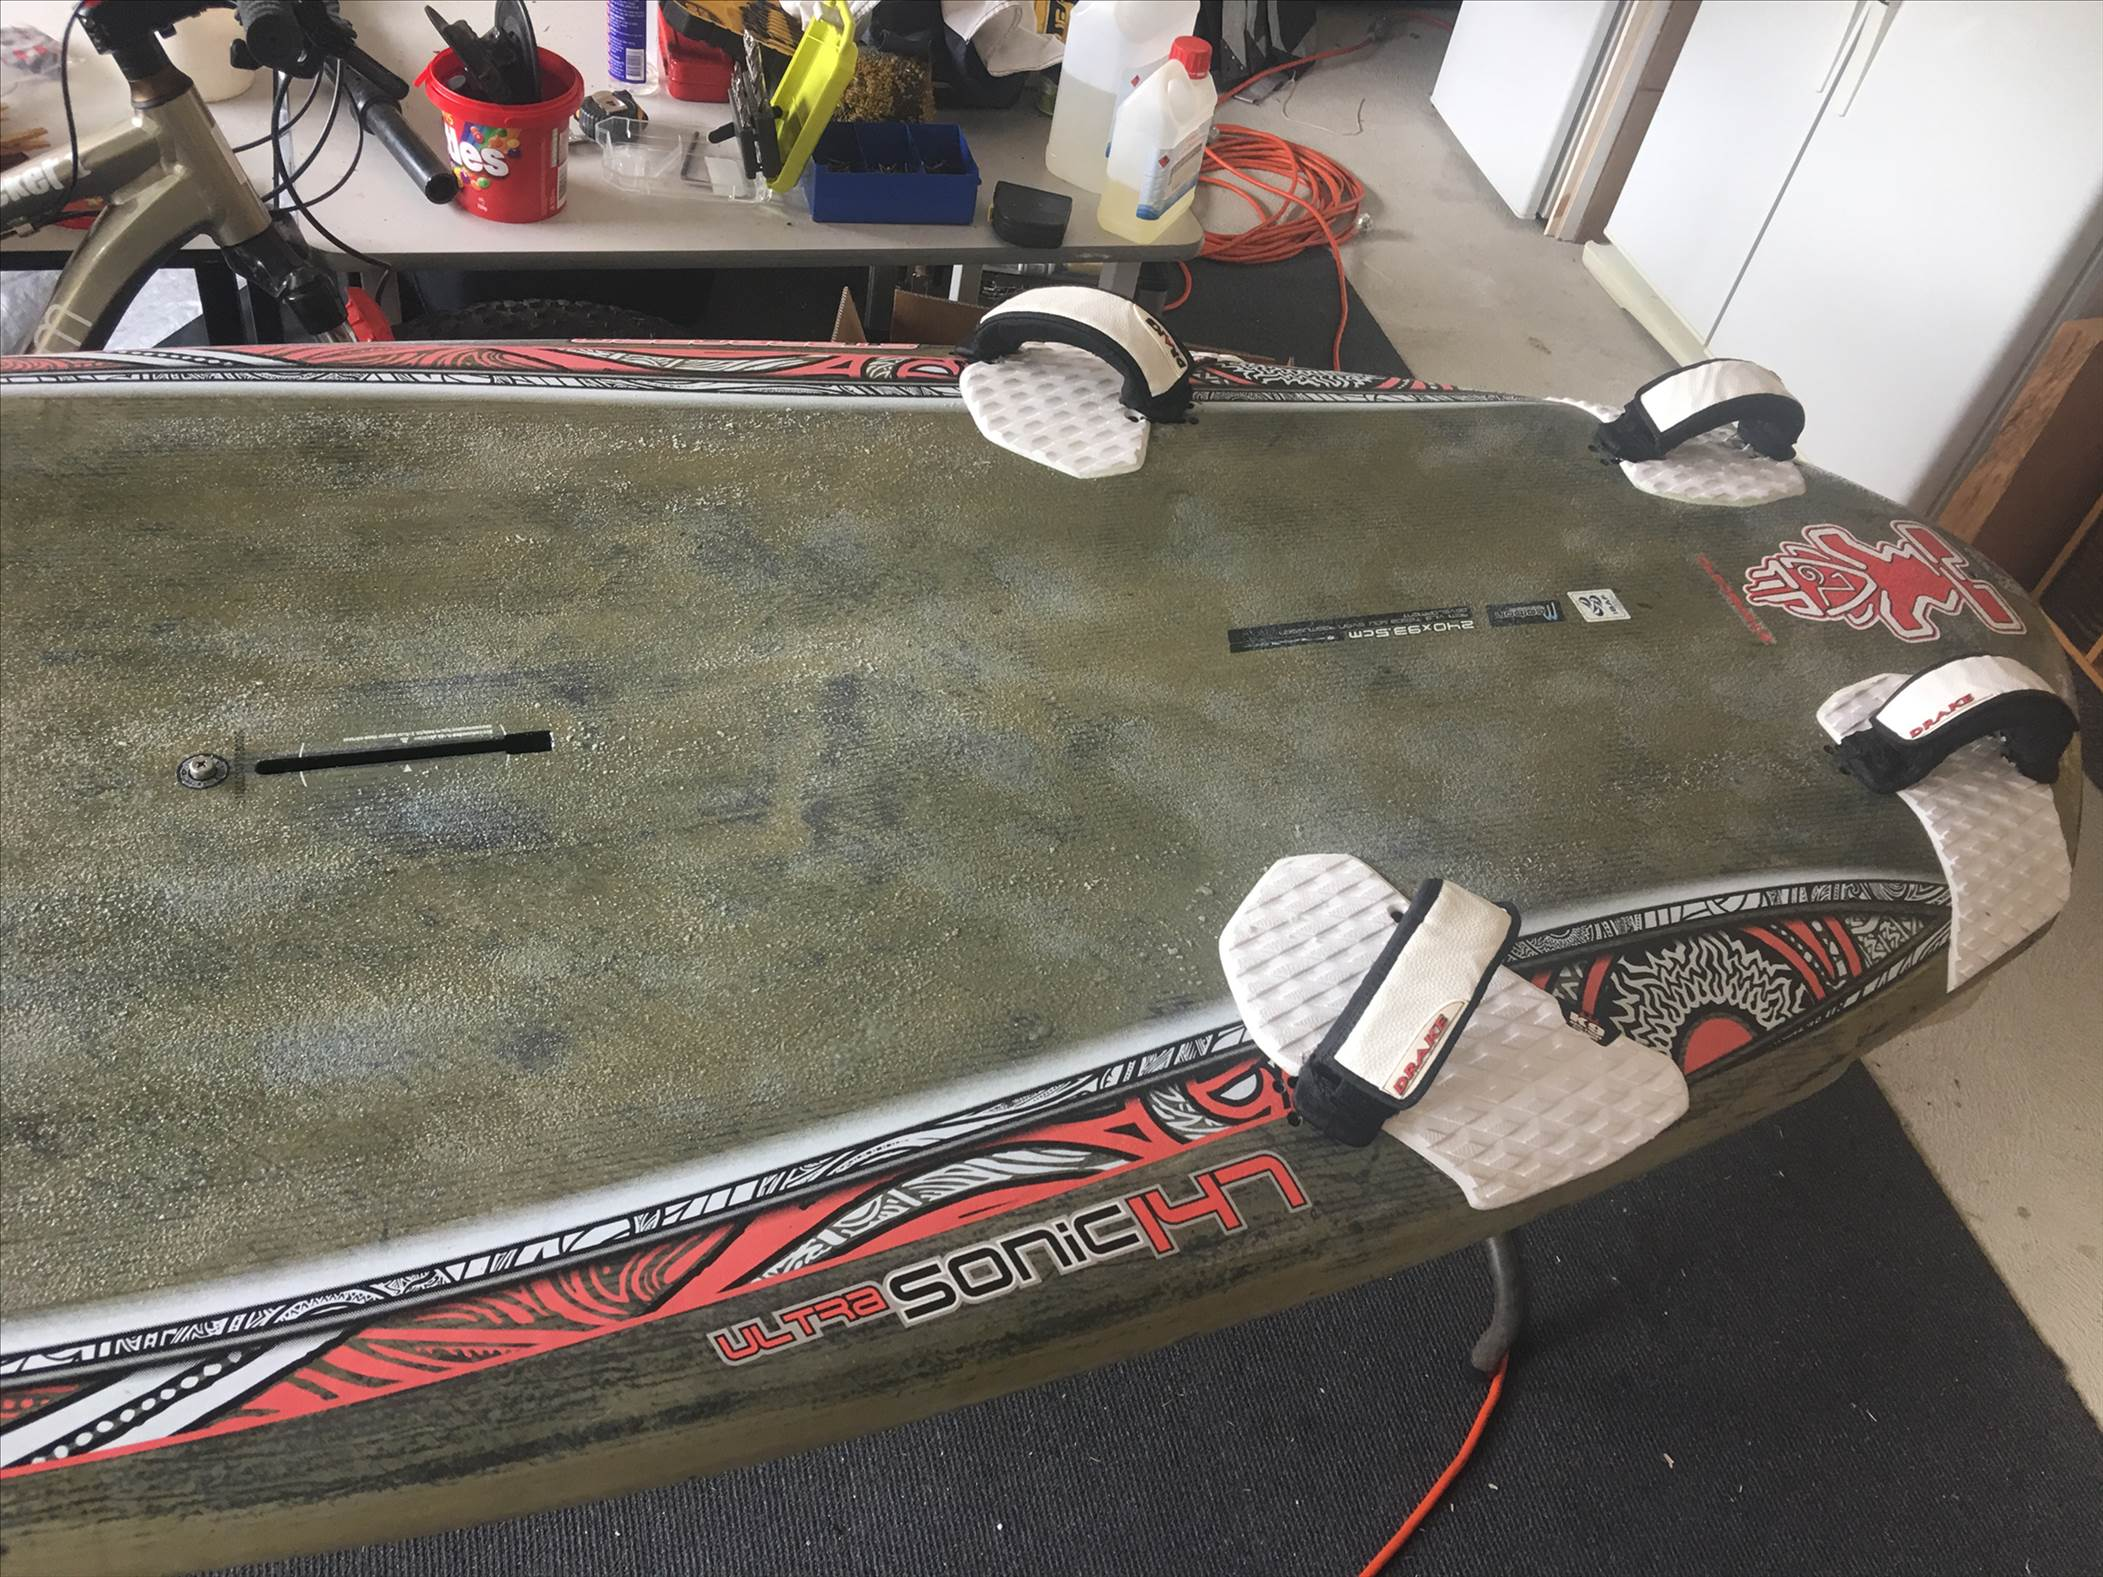 re re gripping a windsurf board made easy | Windsurfing